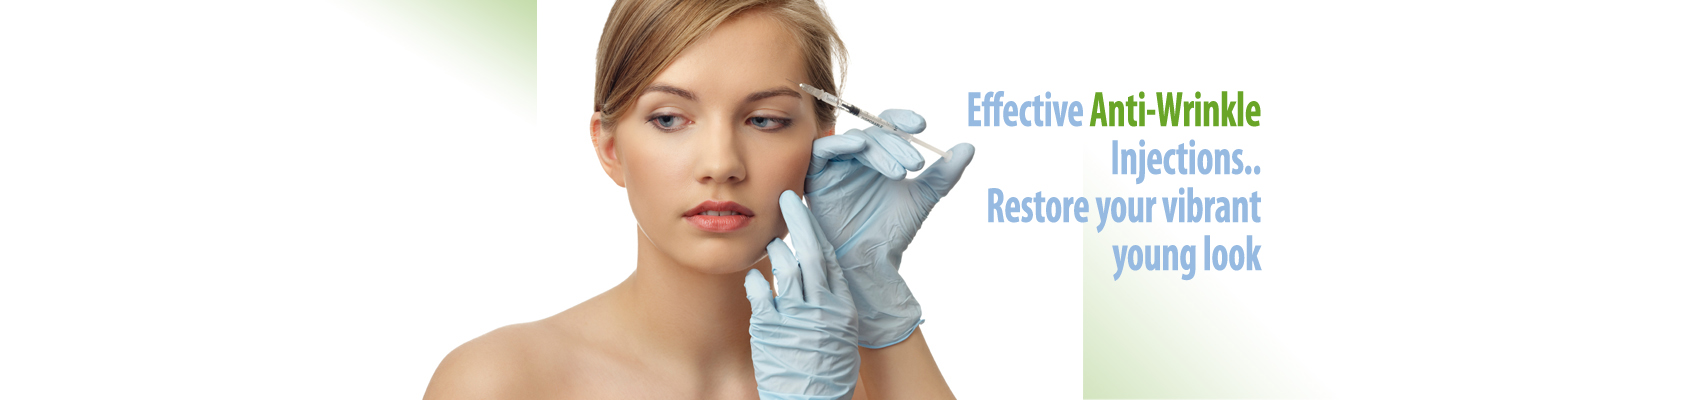 Botox Injections anti-wrinkle treatment - Melbourns